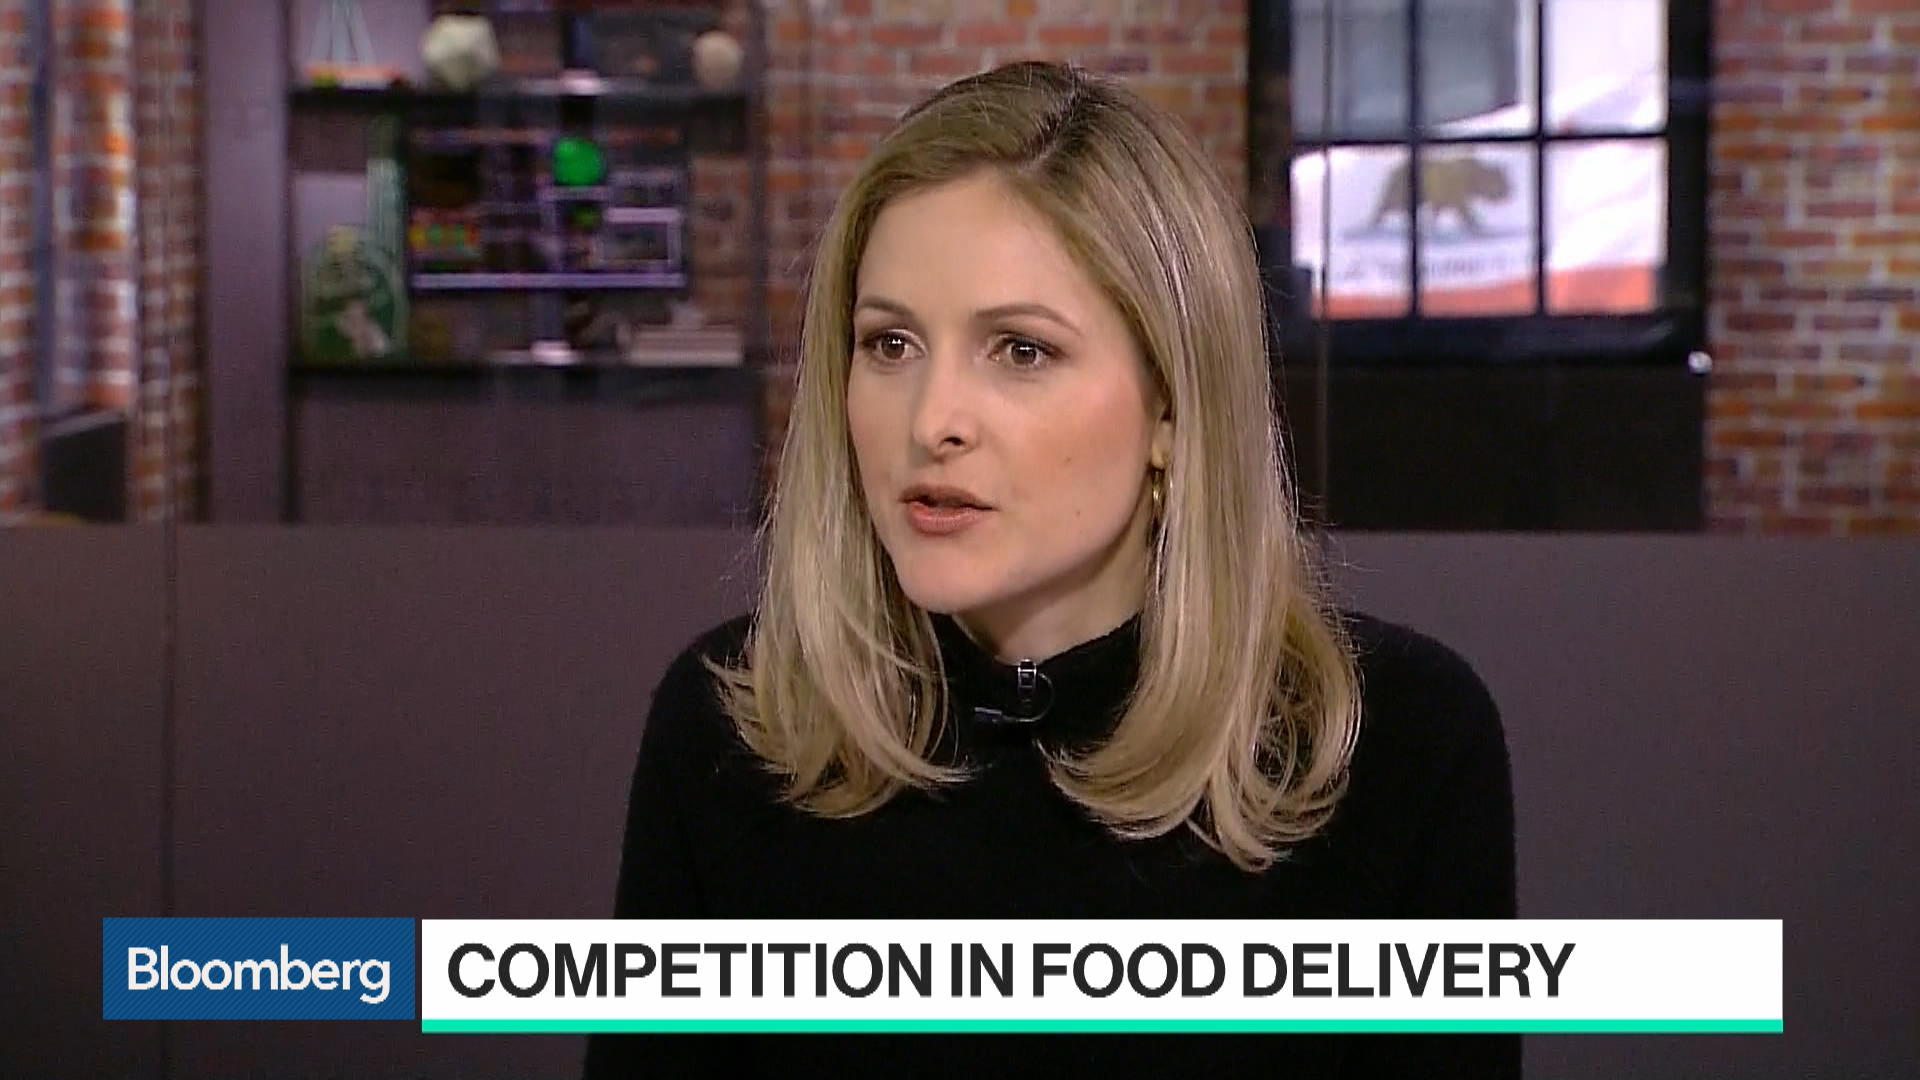 Postmates Food Delivery Pioneer Files for IPO - Bloomberg